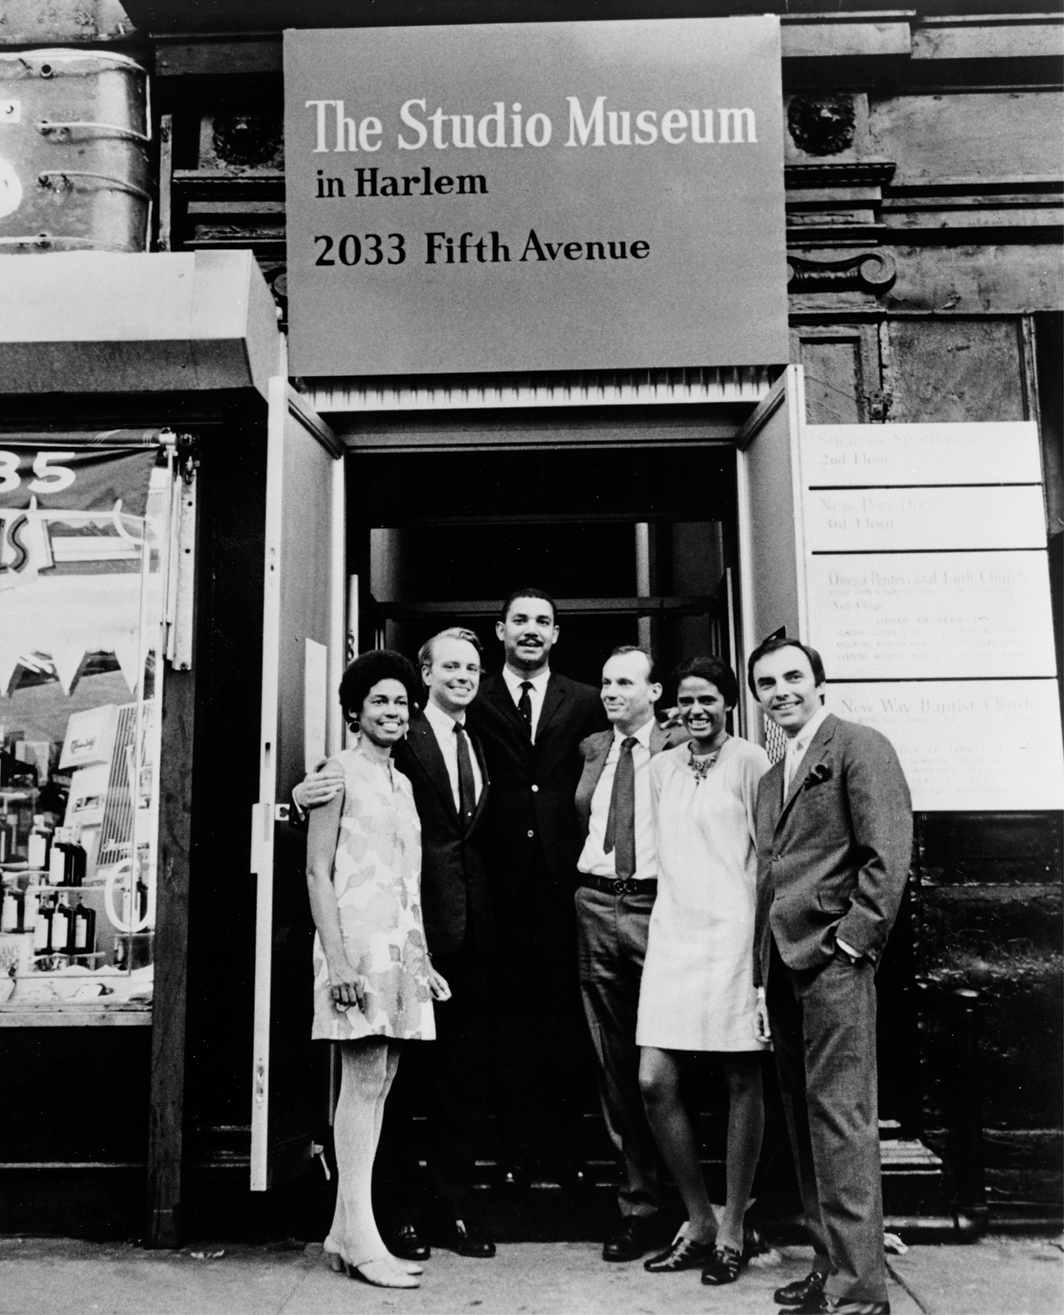 Opening of the Studio Museum in Harlem, New York, 1968. From left: Eleanor Holmes Norton, Carter Burden, Charles Inniss, Campbell Wylly, Betty Blayton-Taylor, Frank Donnelly. Photo: Jill Krementz.